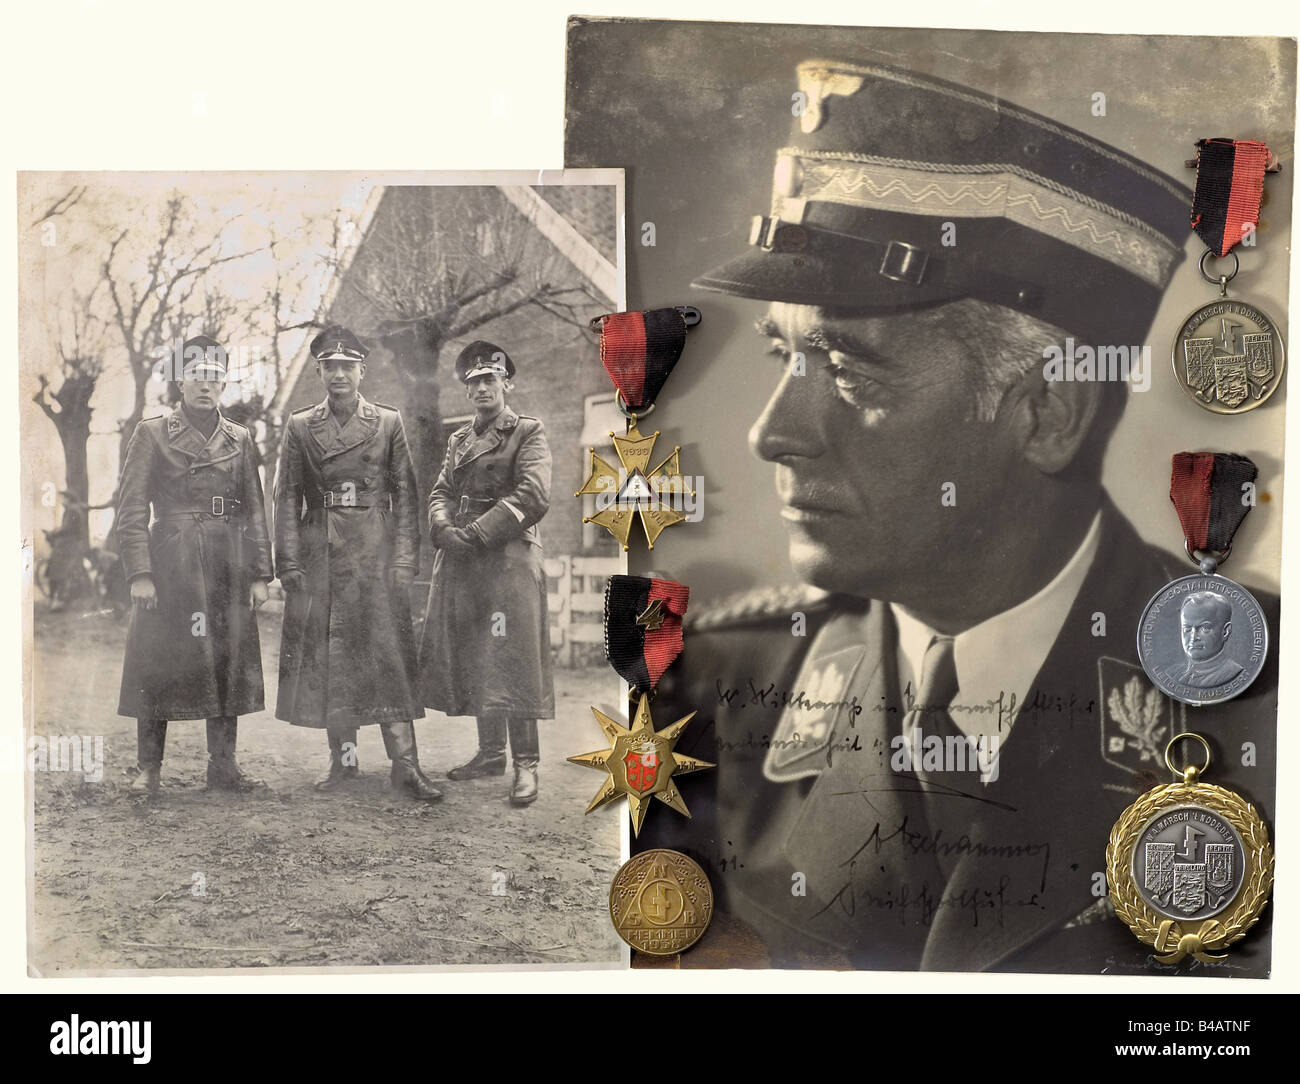 A legacy of documents and insignia, from SS-Obersturmführer Walter Wittkampf in the 83rd Grenadier Regiment - Stock Image